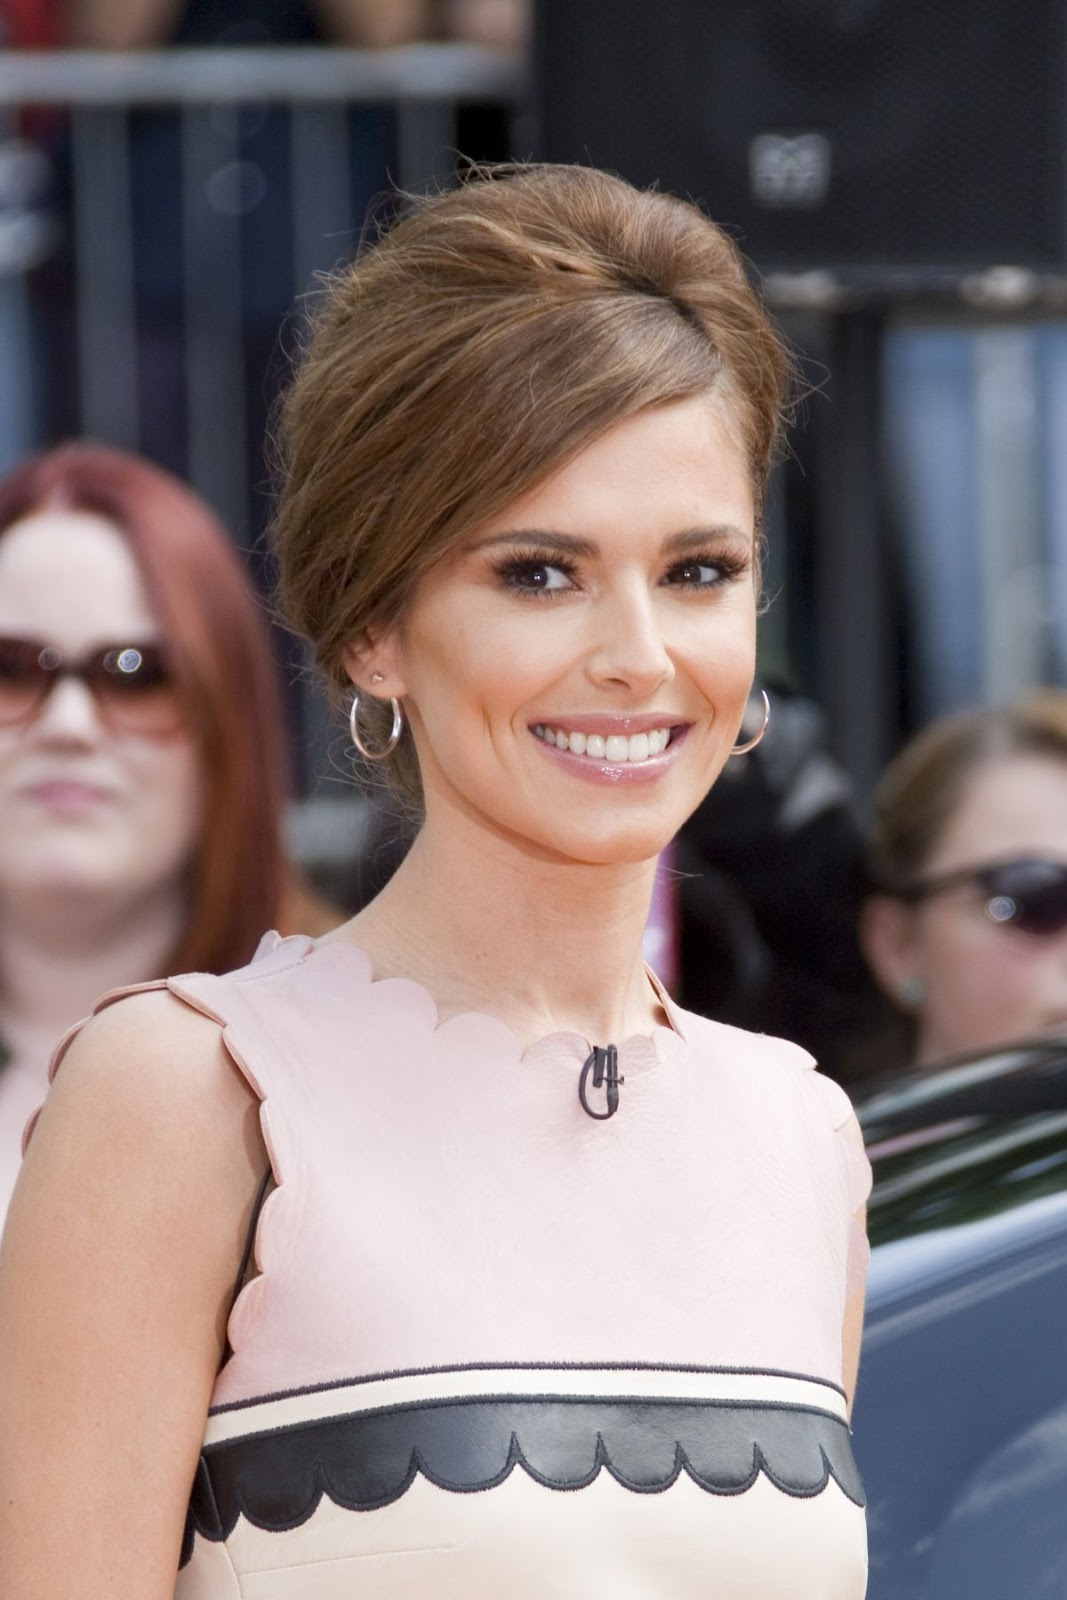 Cheryl Cole At X Factor Audition In London